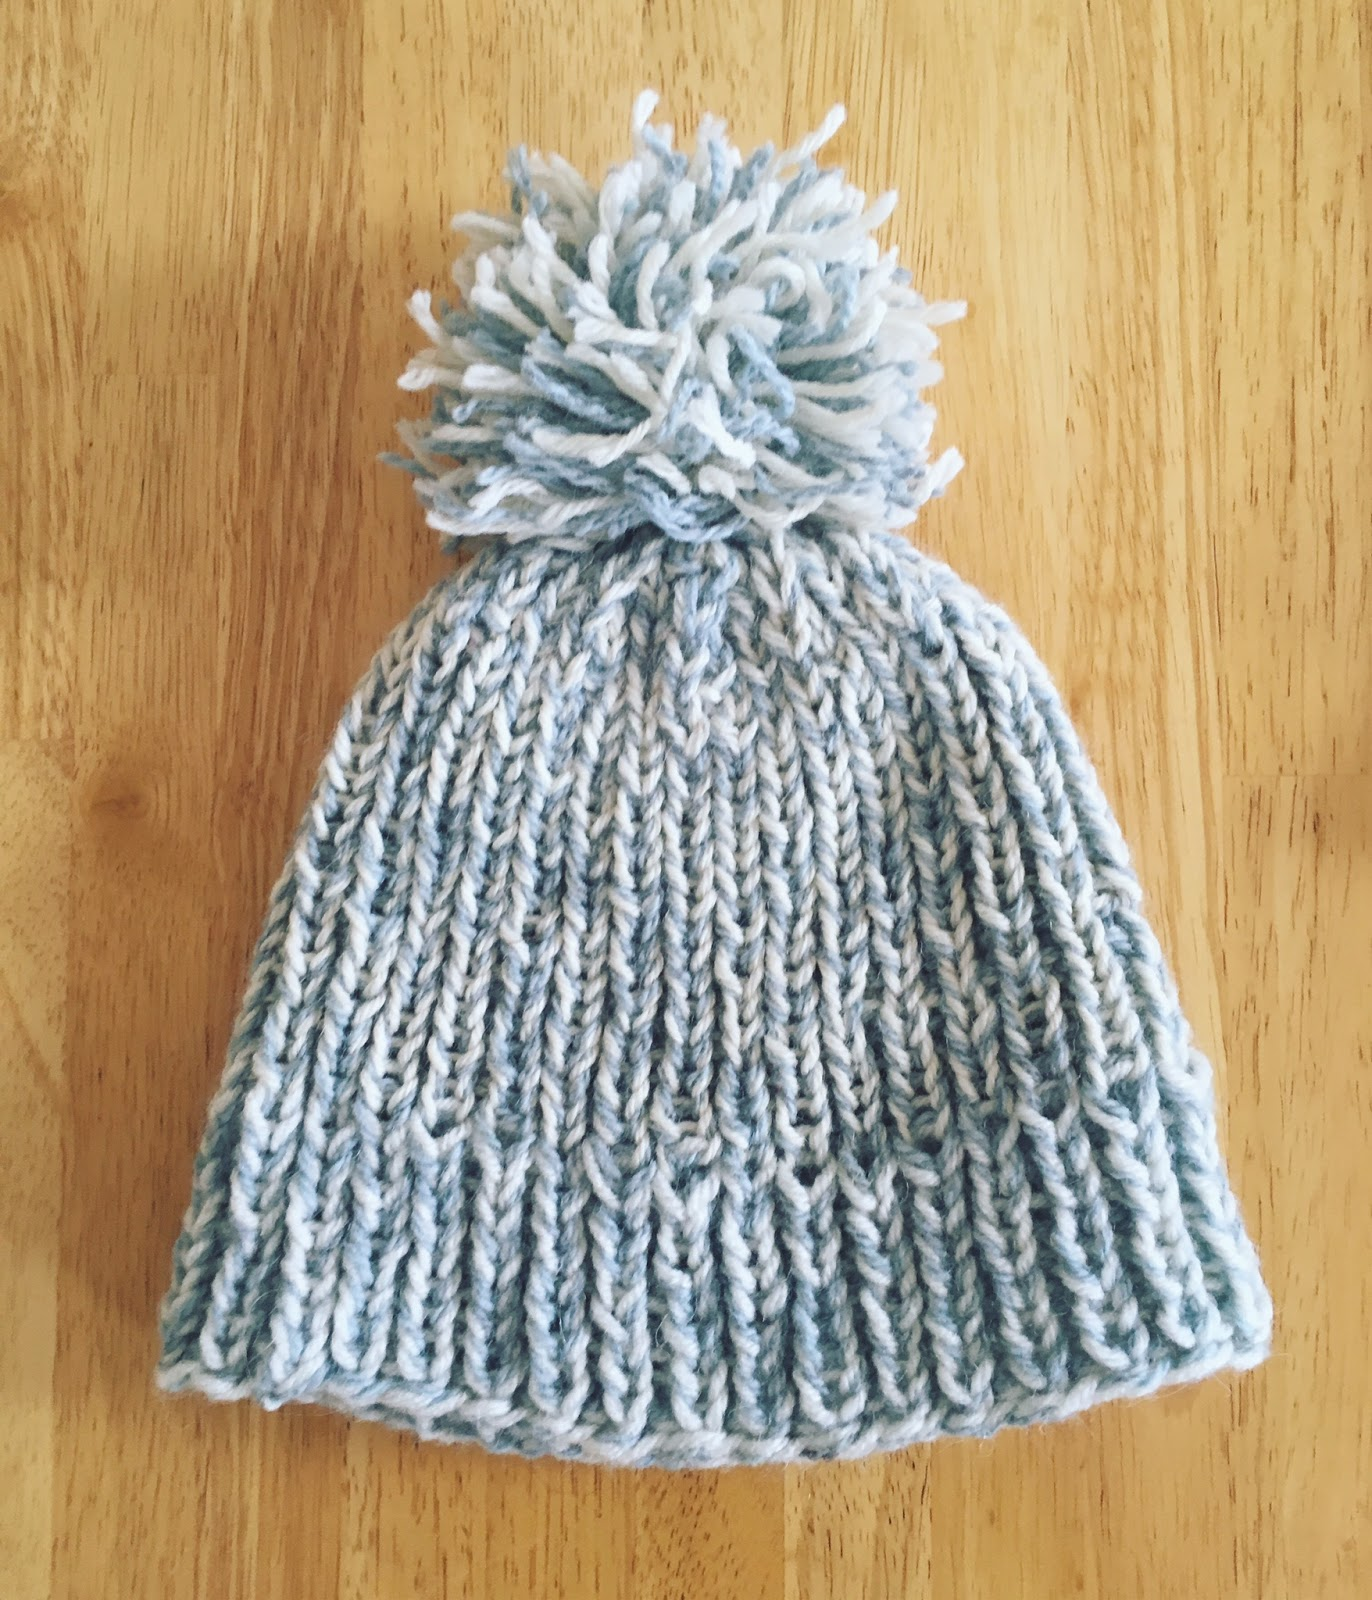 wiseknits: FO Friday: Snowflake Hat